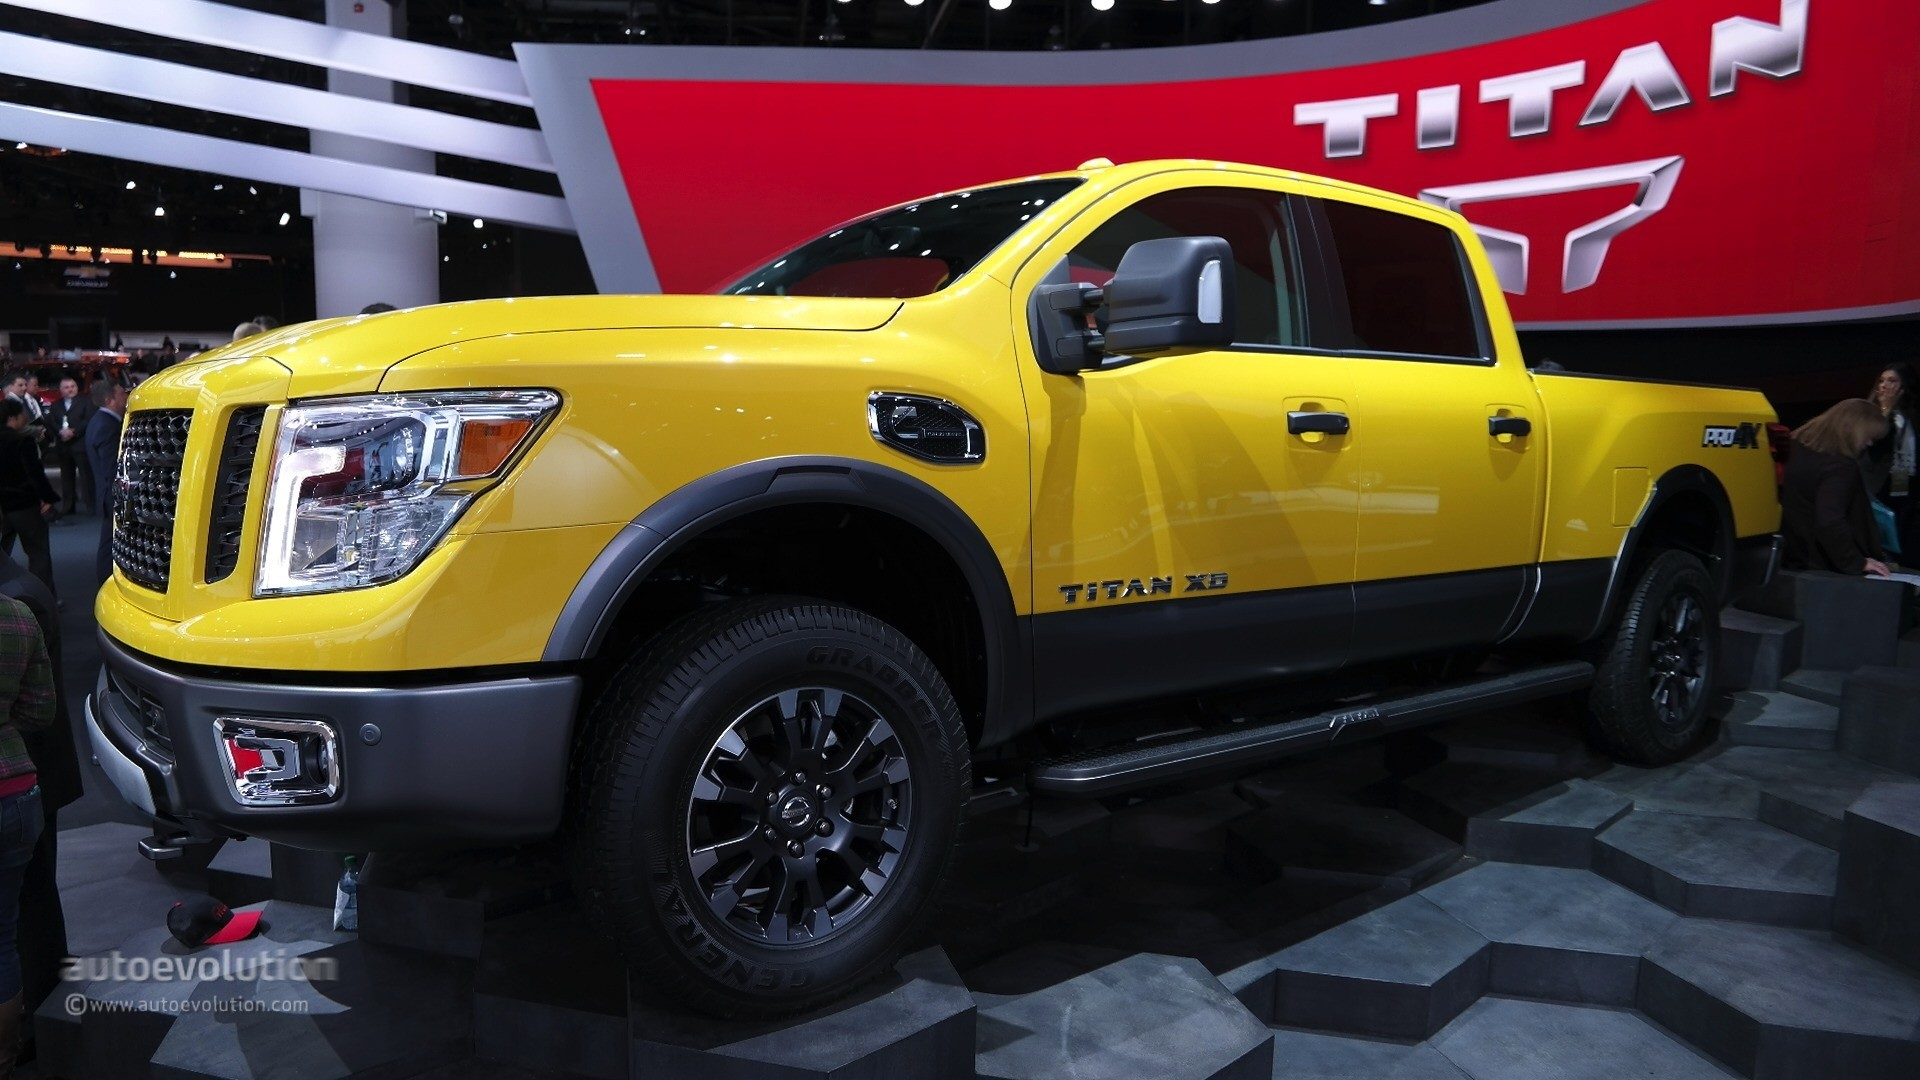 the 2016 nissan titan diesel can tow a massive 12,314 pounds